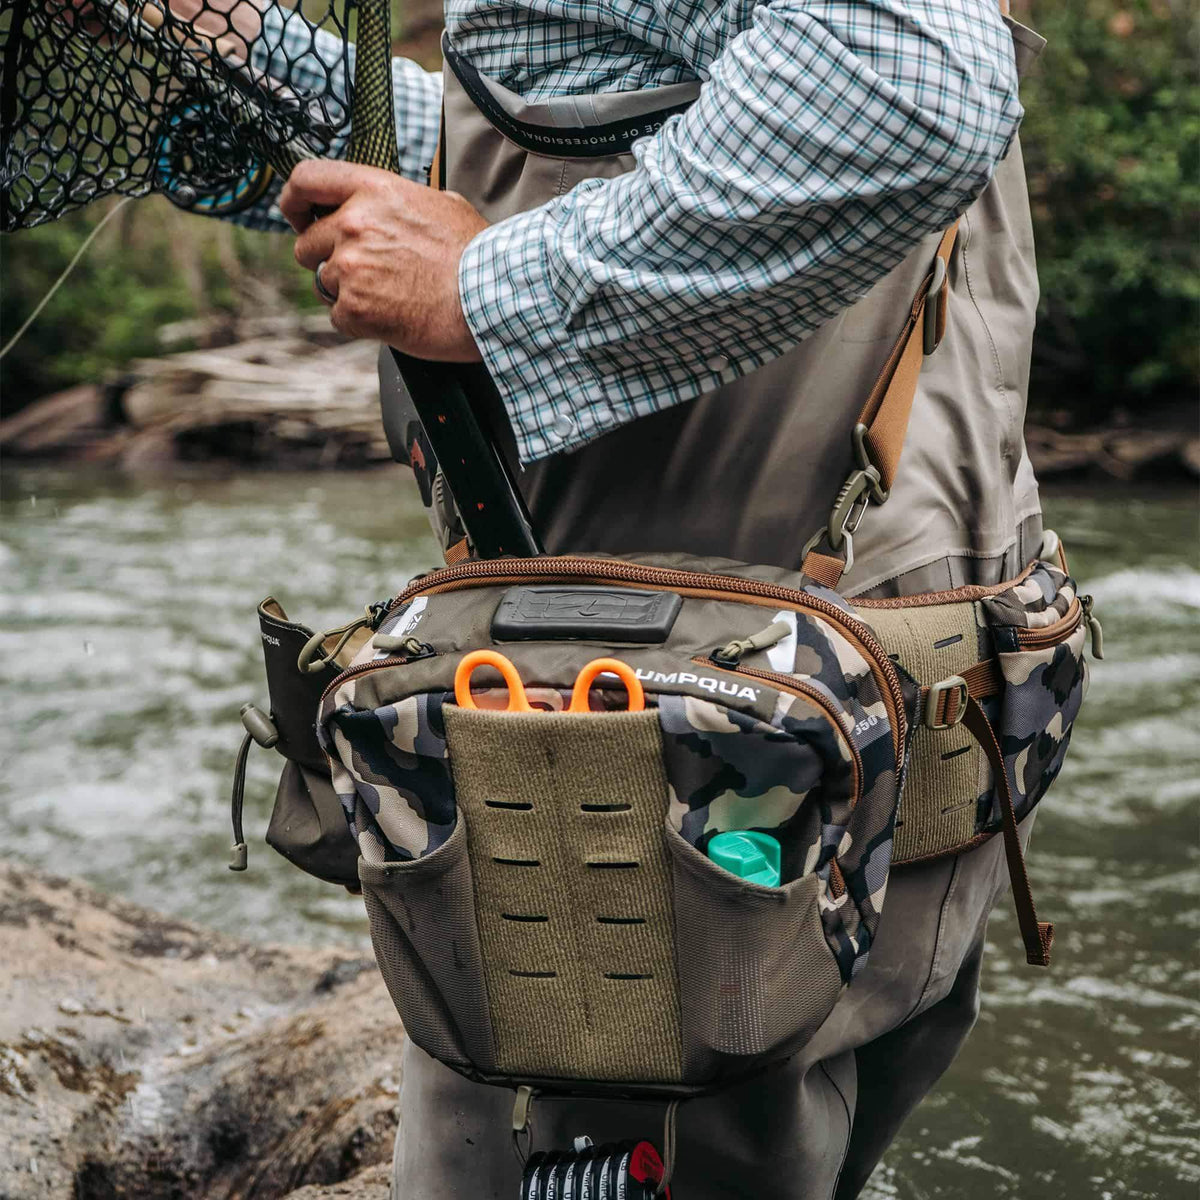 umpqua zs2 ledges 650 fly fishing waist pack on river with net easily removed